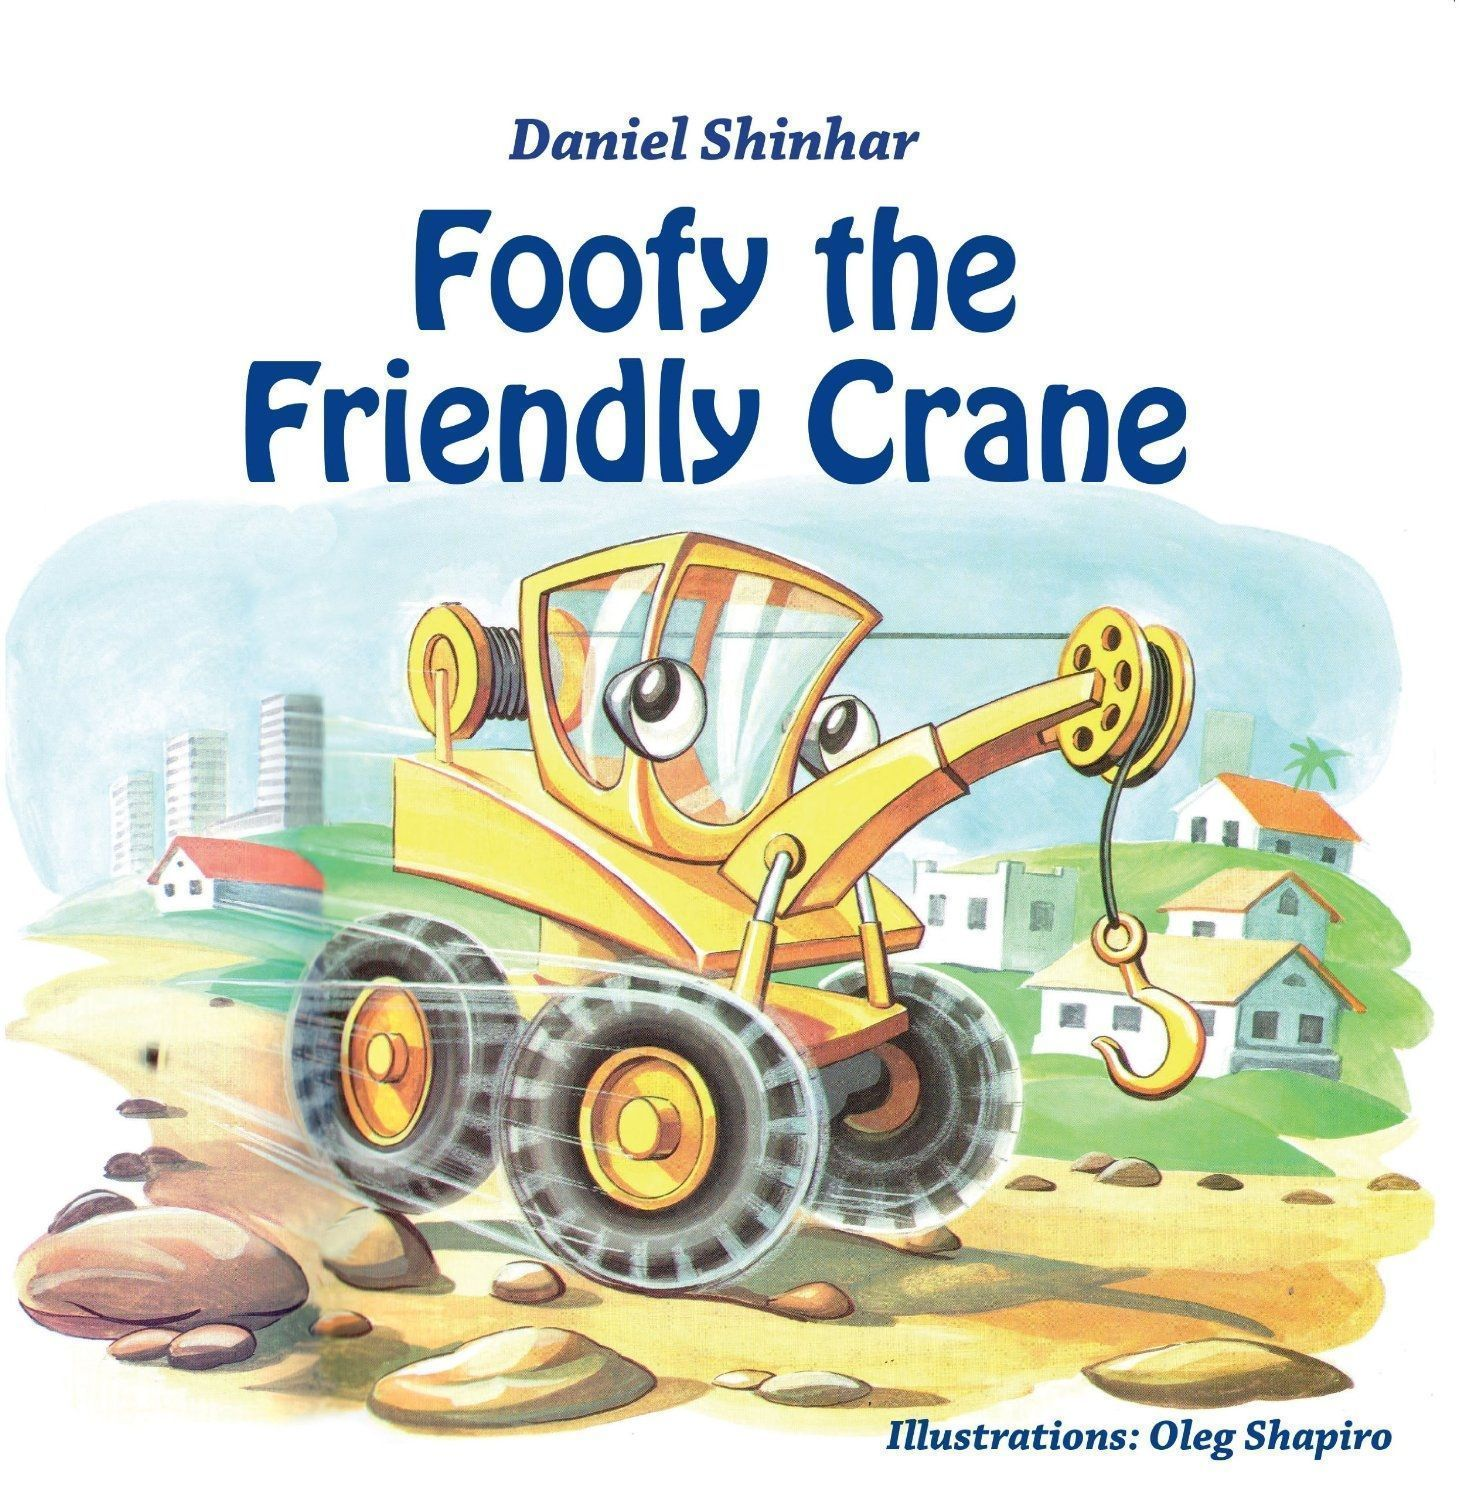 A New Children's Book by Daniel Shinhar is Released